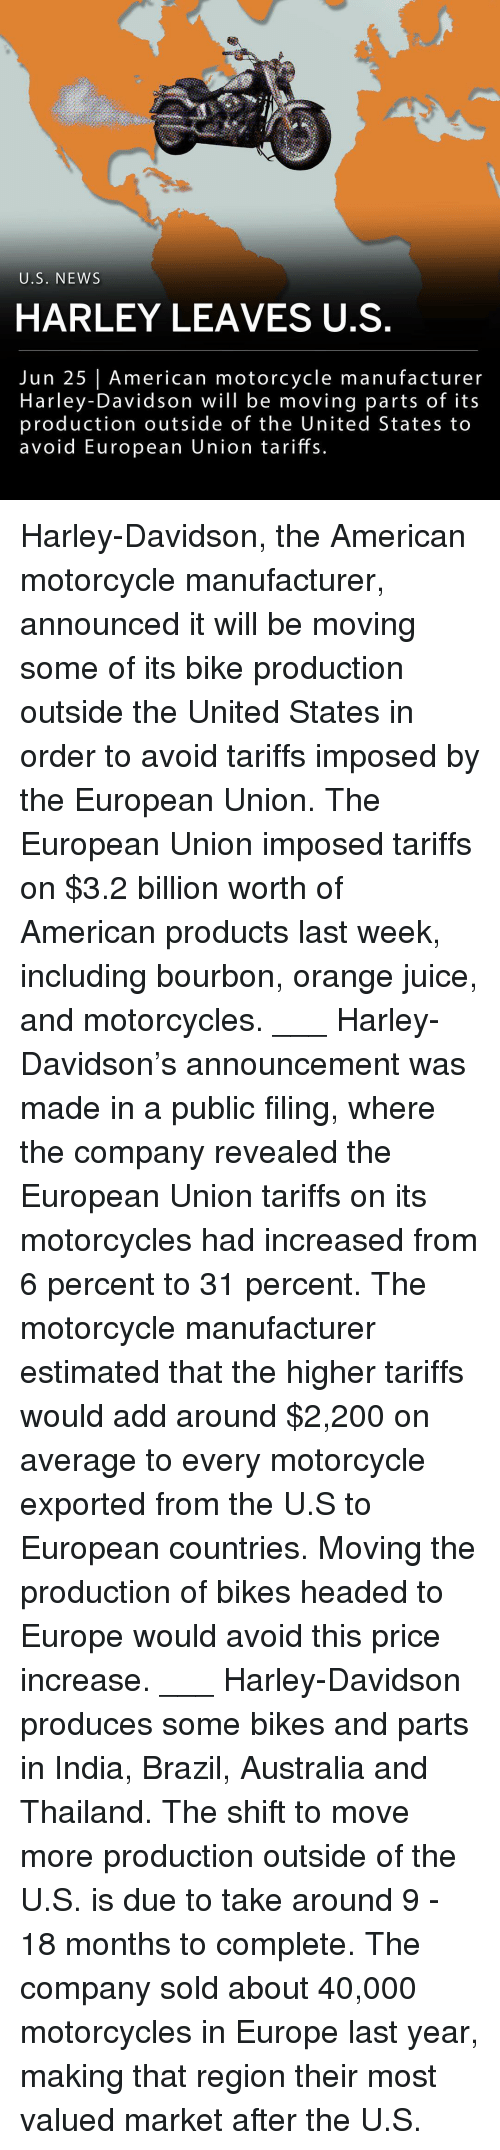 Produces: U.S. NEWS  HARLEY LEAVES U.S  Jun 25 American motorcycle manufacturer  Harley-Davidson will be moving parts of its  production outside of the United States to  avoid European Union tariffs. Harley-Davidson, the American motorcycle manufacturer, announced it will be moving some of its bike production outside the United States in order to avoid tariffs imposed by the European Union. The European Union imposed tariffs on $3.2 billion worth of American products last week, including bourbon, orange juice, and motorcycles. ___ Harley-Davidson's announcement was made in a public filing, where the company revealed the European Union tariffs on its motorcycles had increased from 6 percent to 31 percent. The motorcycle manufacturer estimated that the higher tariffs would add around $2,200 on average to every motorcycle exported from the U.S to European countries. Moving the production of bikes headed to Europe would avoid this price increase. ___ Harley-Davidson produces some bikes and parts in India, Brazil, Australia and Thailand. The shift to move more production outside of the U.S. is due to take around 9 - 18 months to complete. The company sold about 40,000 motorcycles in Europe last year, making that region their most valued market after the U.S.